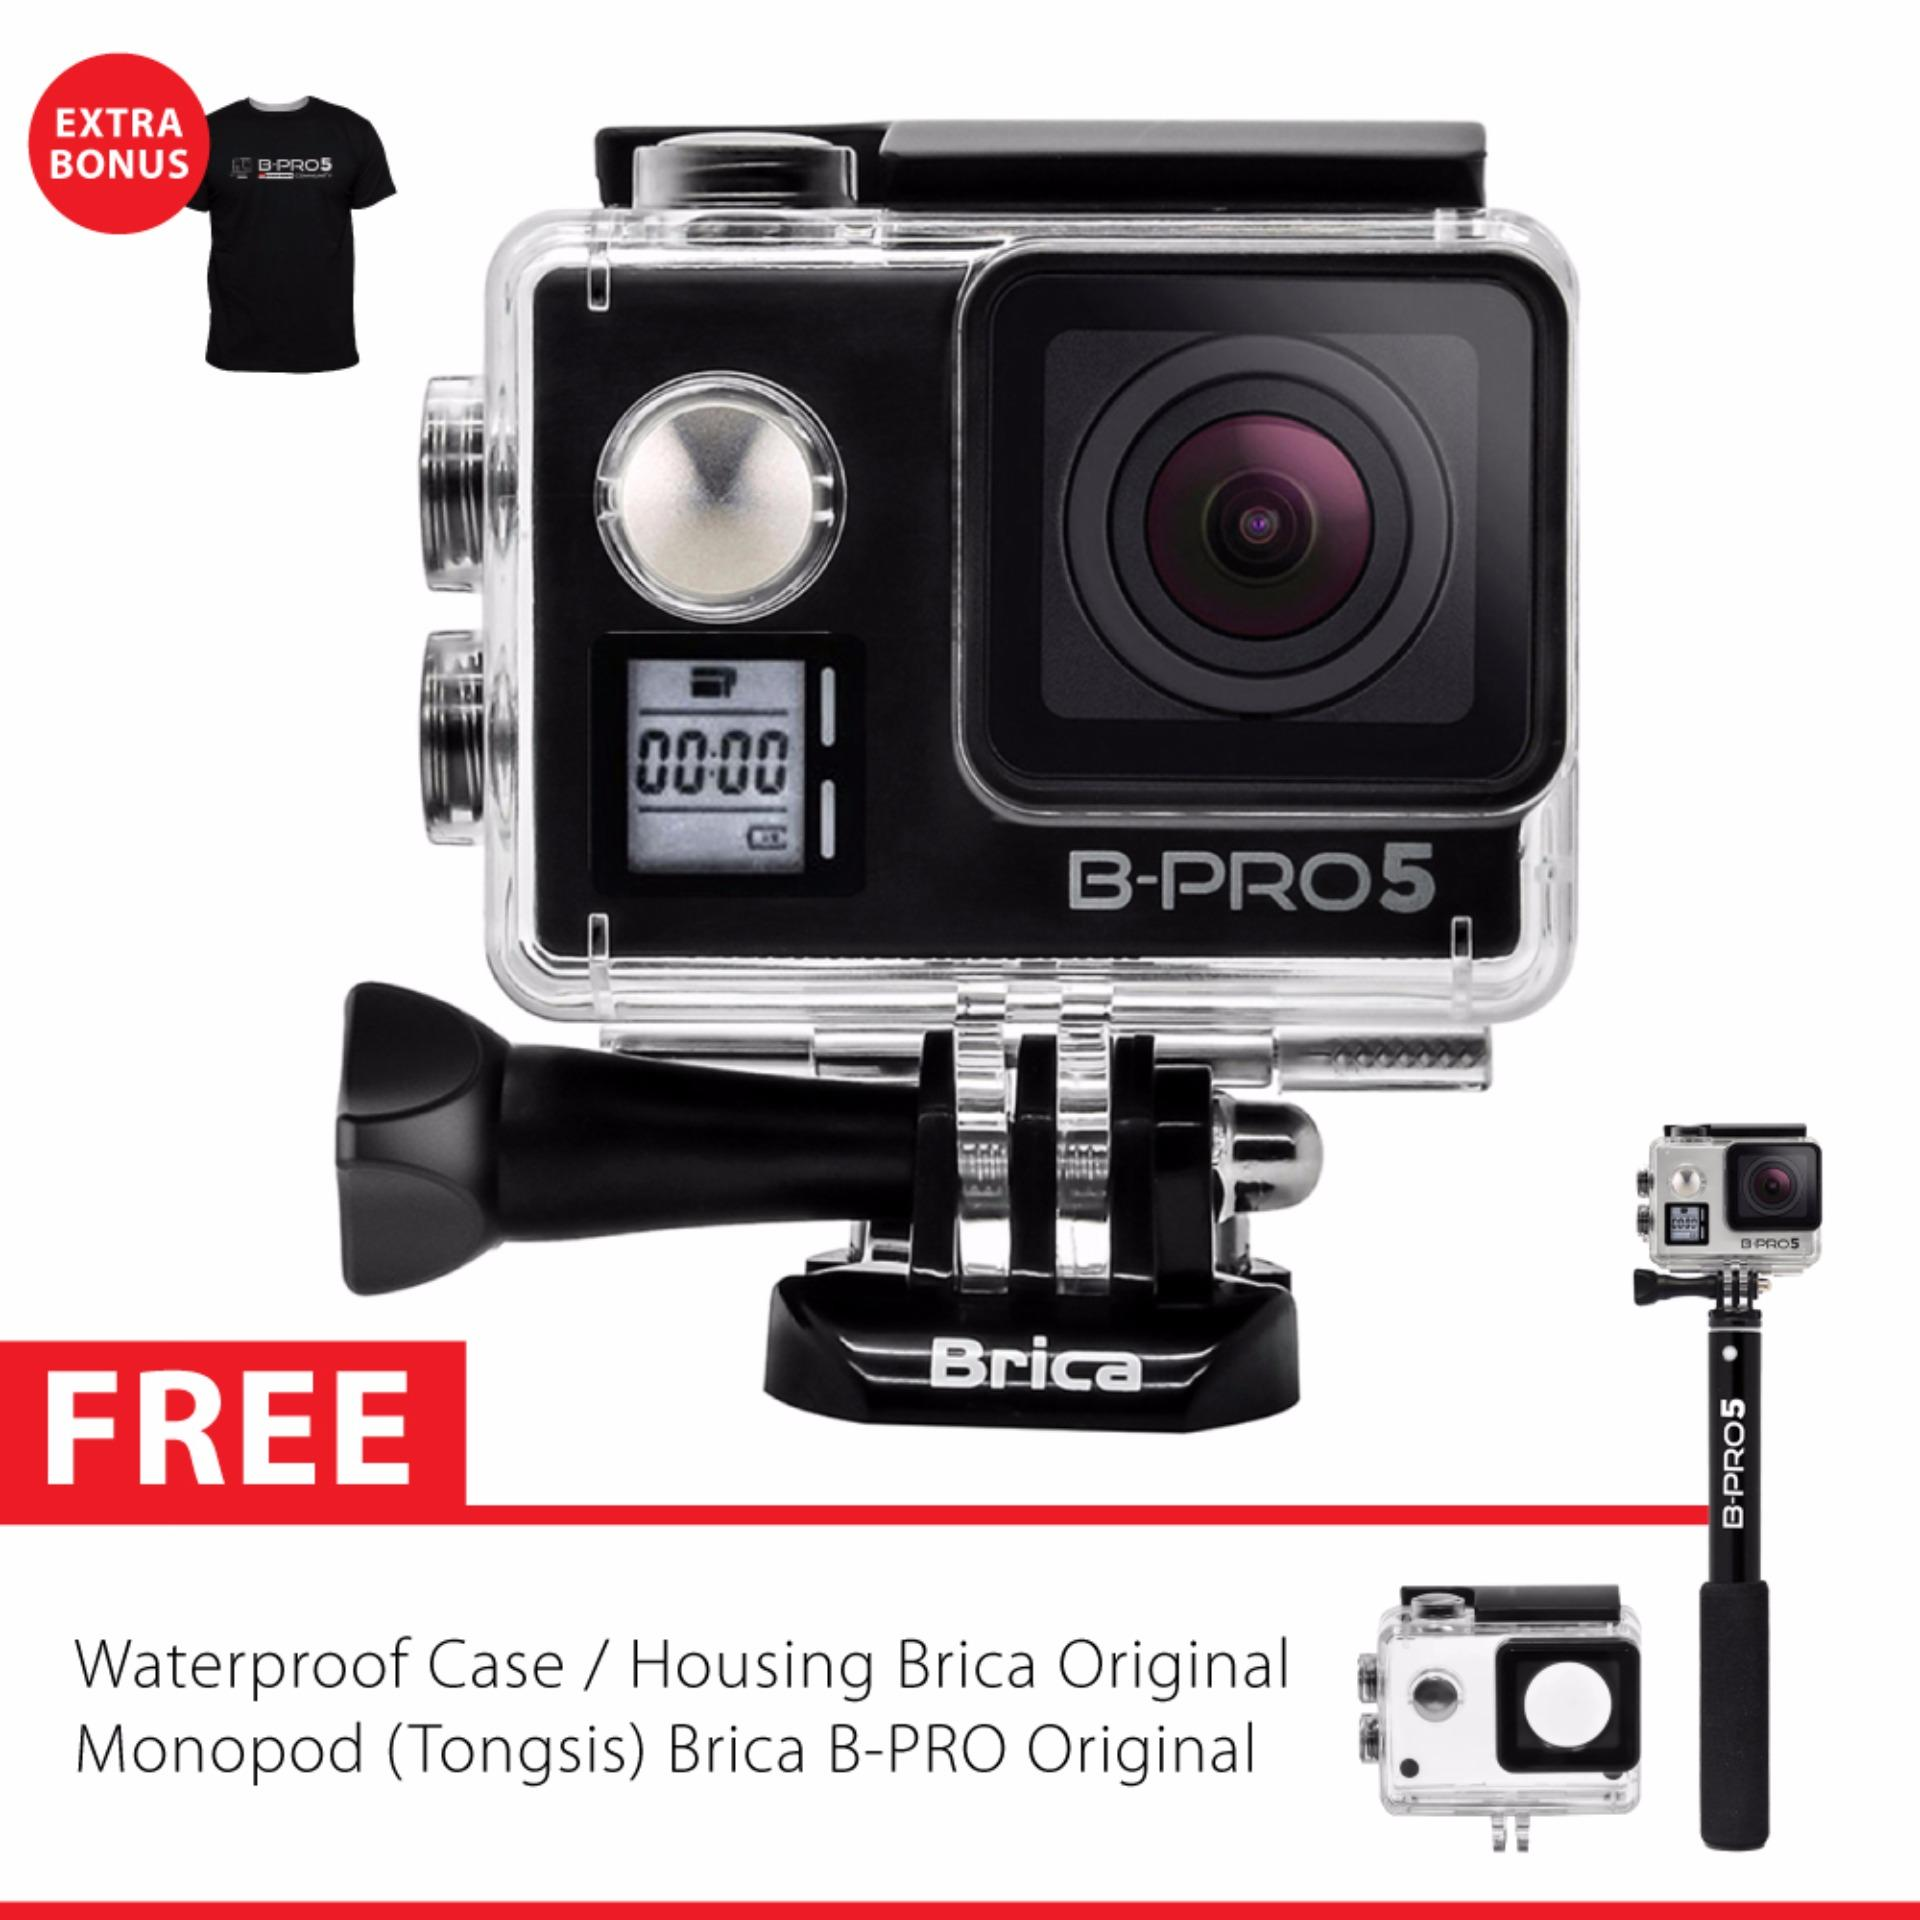 Beli Barang Brica B Pro 5 Alpha Edition Version 2 Mark Iis Ae2S 4K Wifi Action Camera Tongsis Brica Original Hitam Online